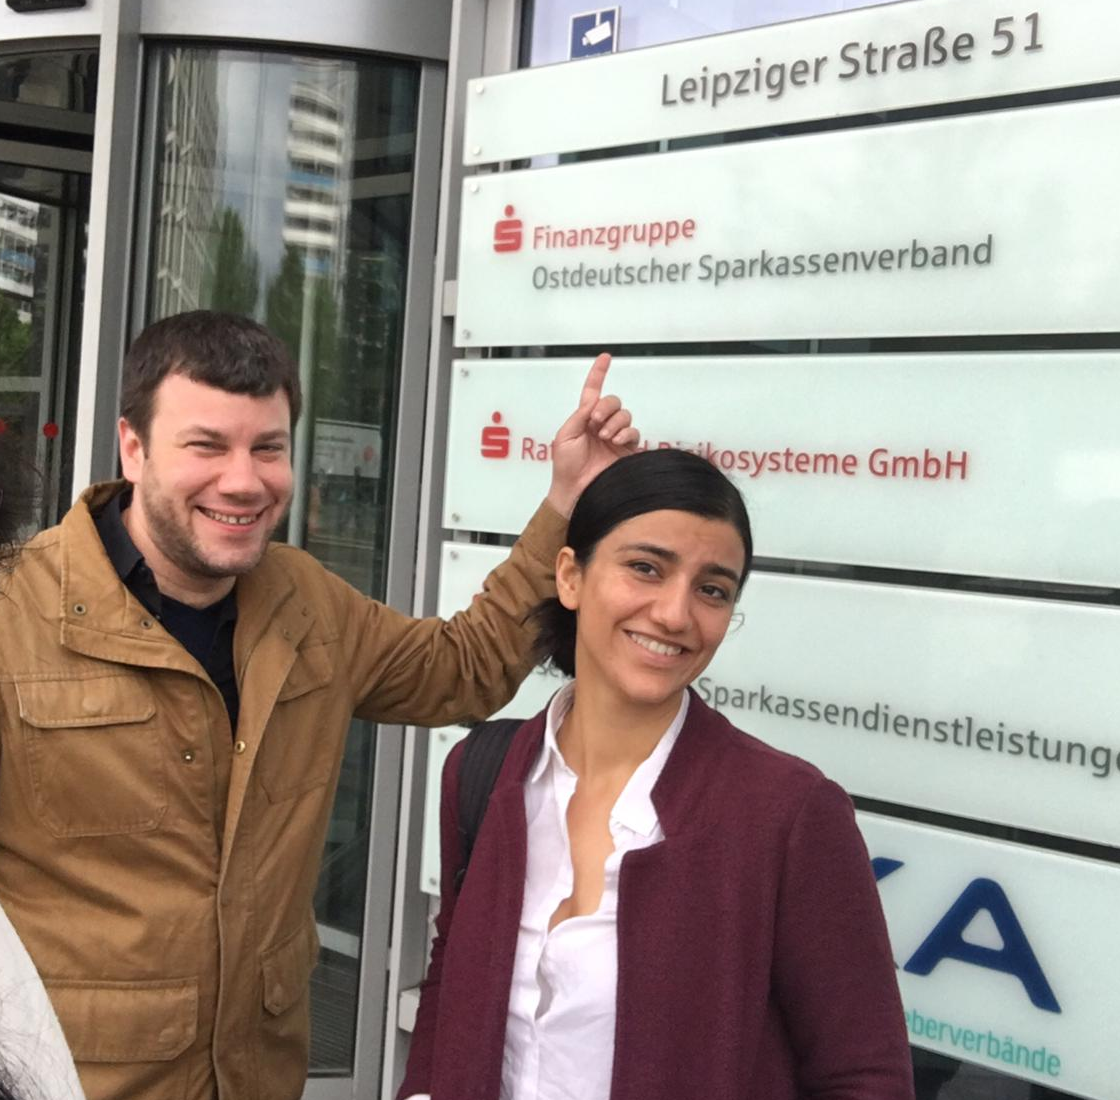 Ali Issa and interpreter Schluwa Sama outside Sparkassen-Finanzgruppe